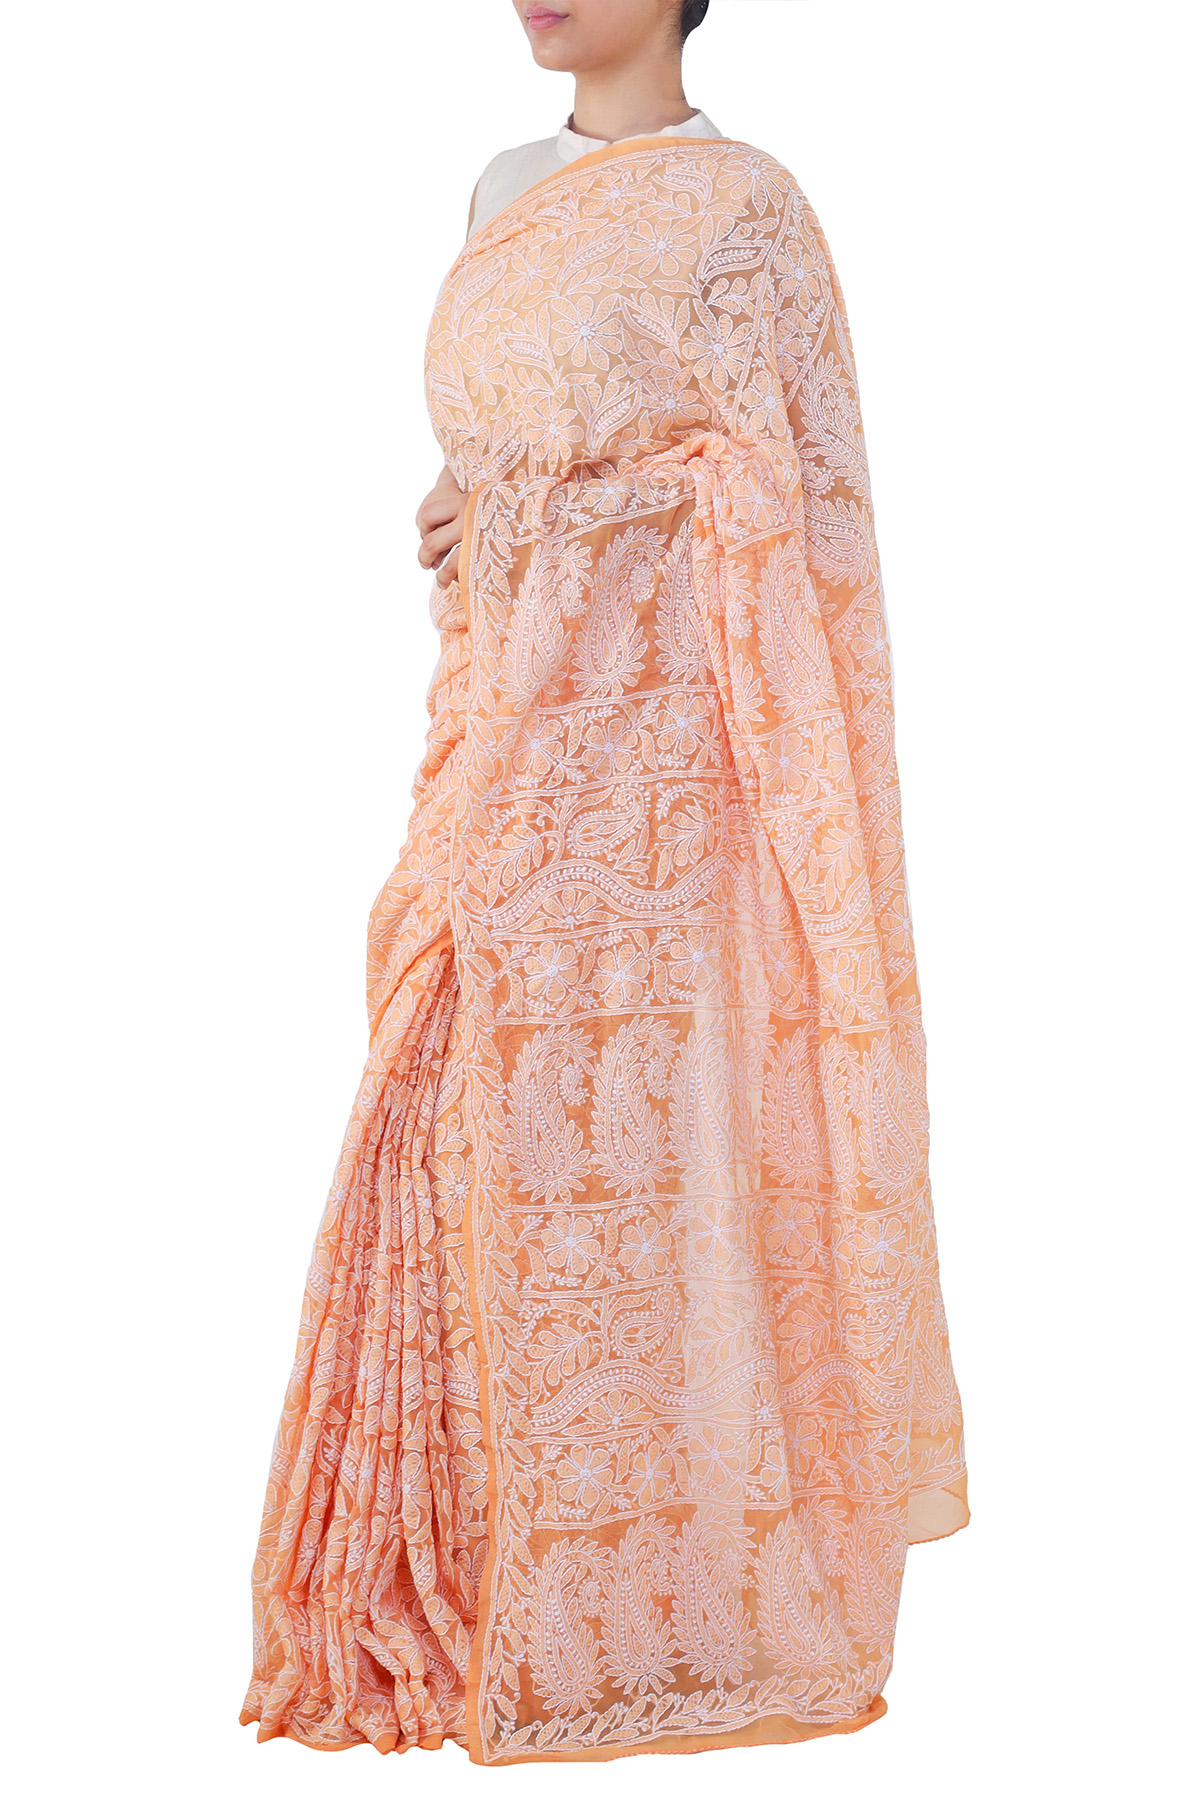 Orange Color Allover Heavy Palla Hand Embroidered Lucknowi Chikankari Saree (With Blouse - Georgette) KC250679